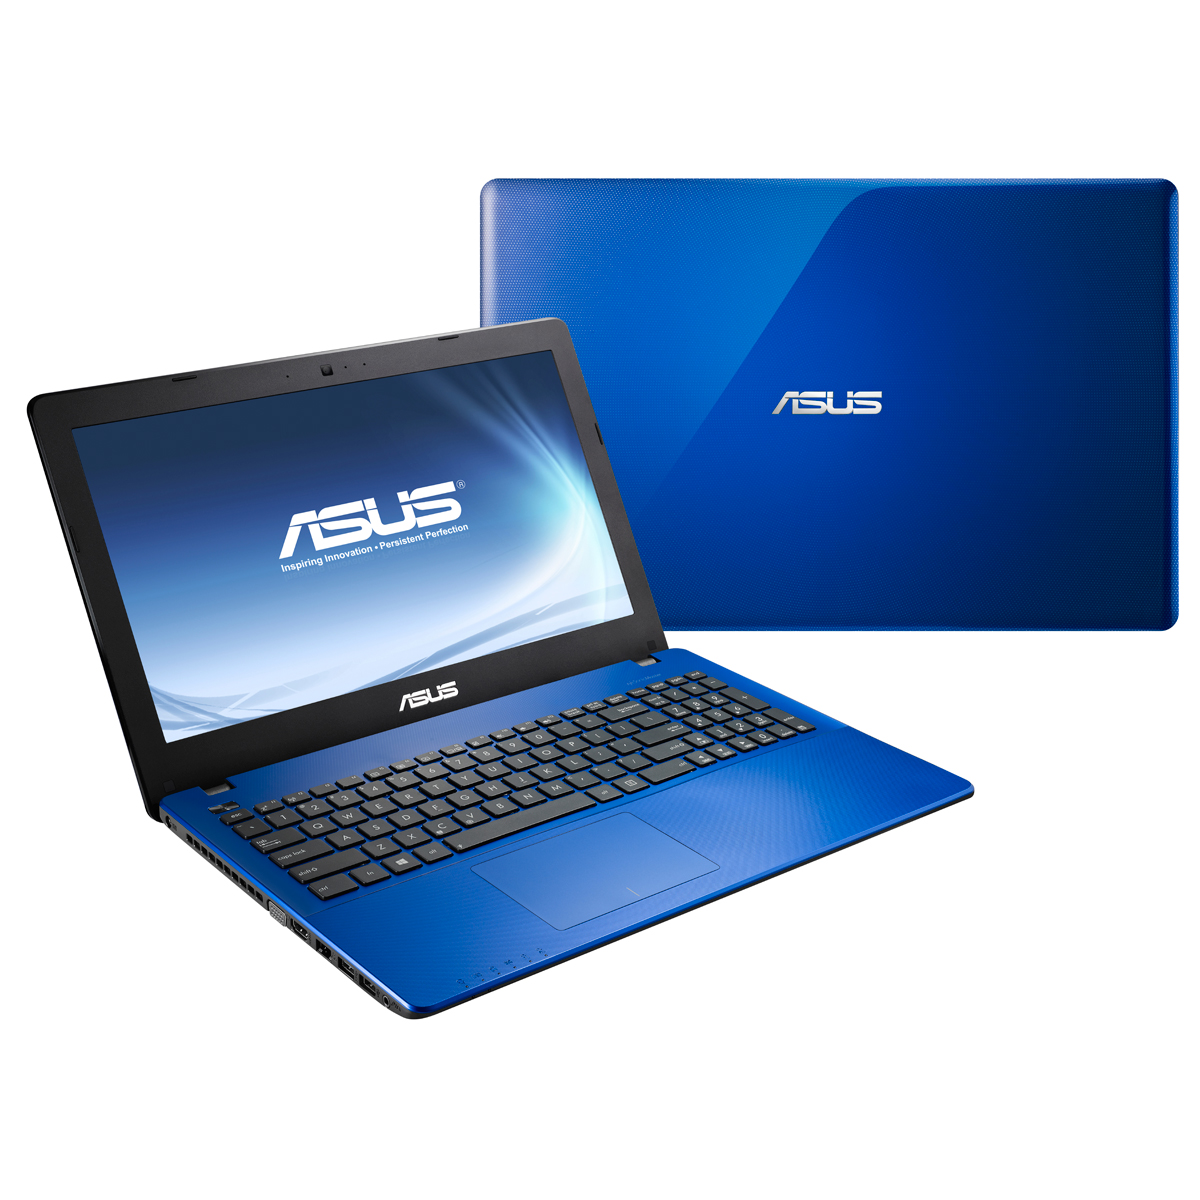 asus r510cc xx575h bleu pc portable asus sur ldlc. Black Bedroom Furniture Sets. Home Design Ideas